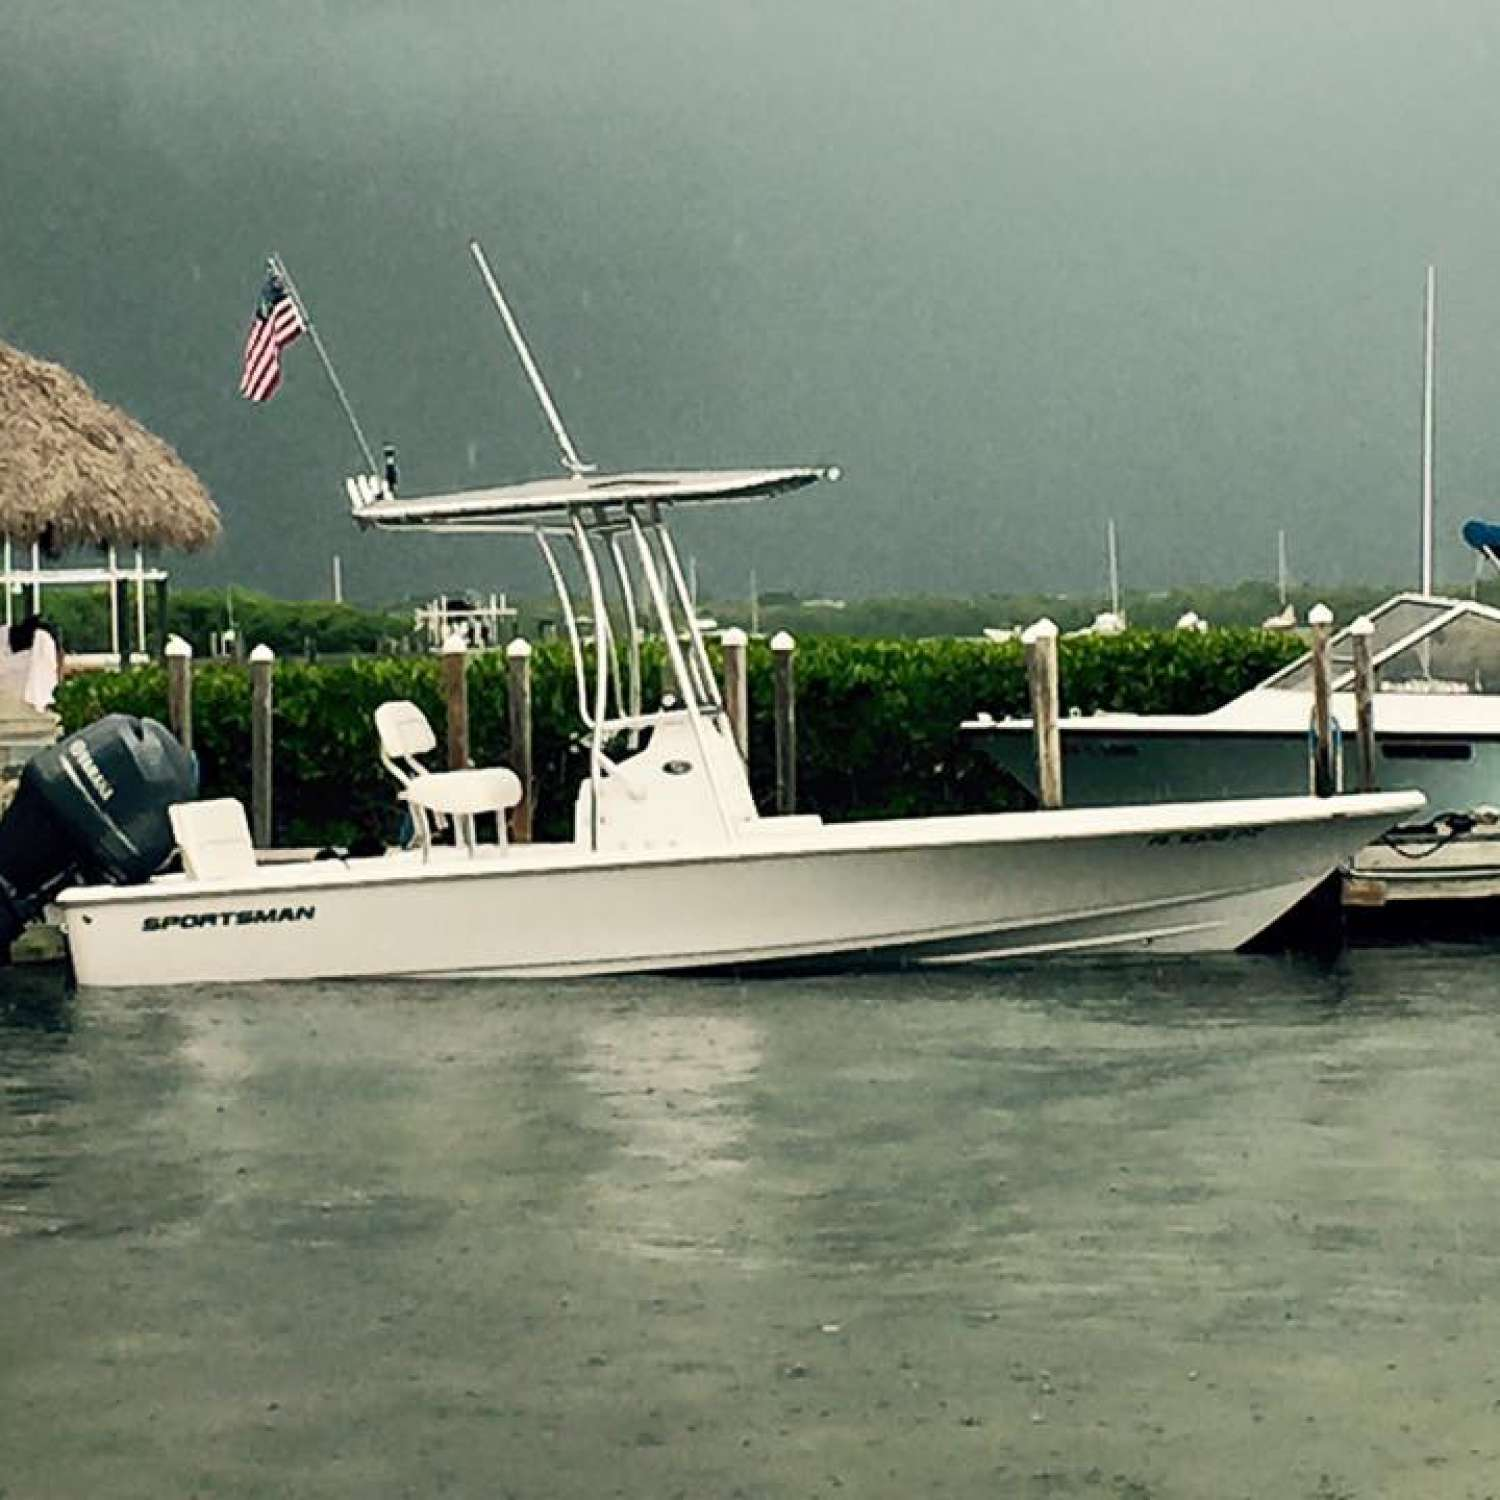 Title: Cloudy In The Keys - On board their Sportsman Tournament 214 SBX Bay Boat (Pre-2020) - Location: Royal Palm Beach, Florida. Participating in the Photo Contest #SportsmanMarch2017